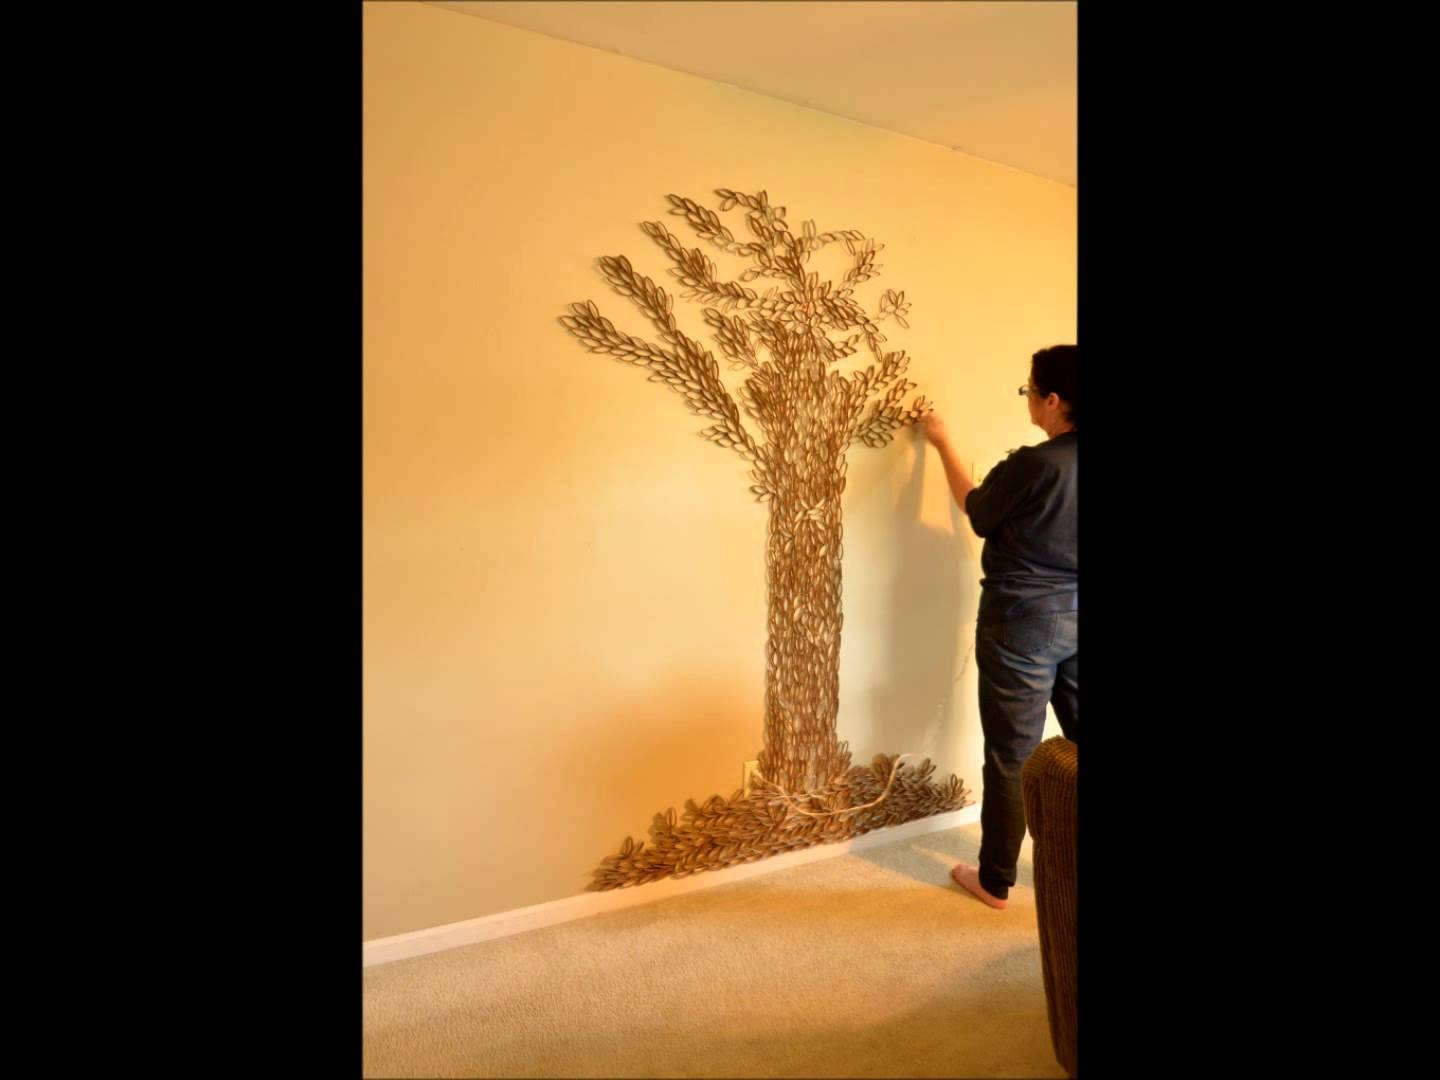 Tree Of Life Wall Art – 7ft Paper Roll Sculpture In 1 Minute Pertaining To Most Recently Released Tree Wall Art Sculpture (View 12 of 20)